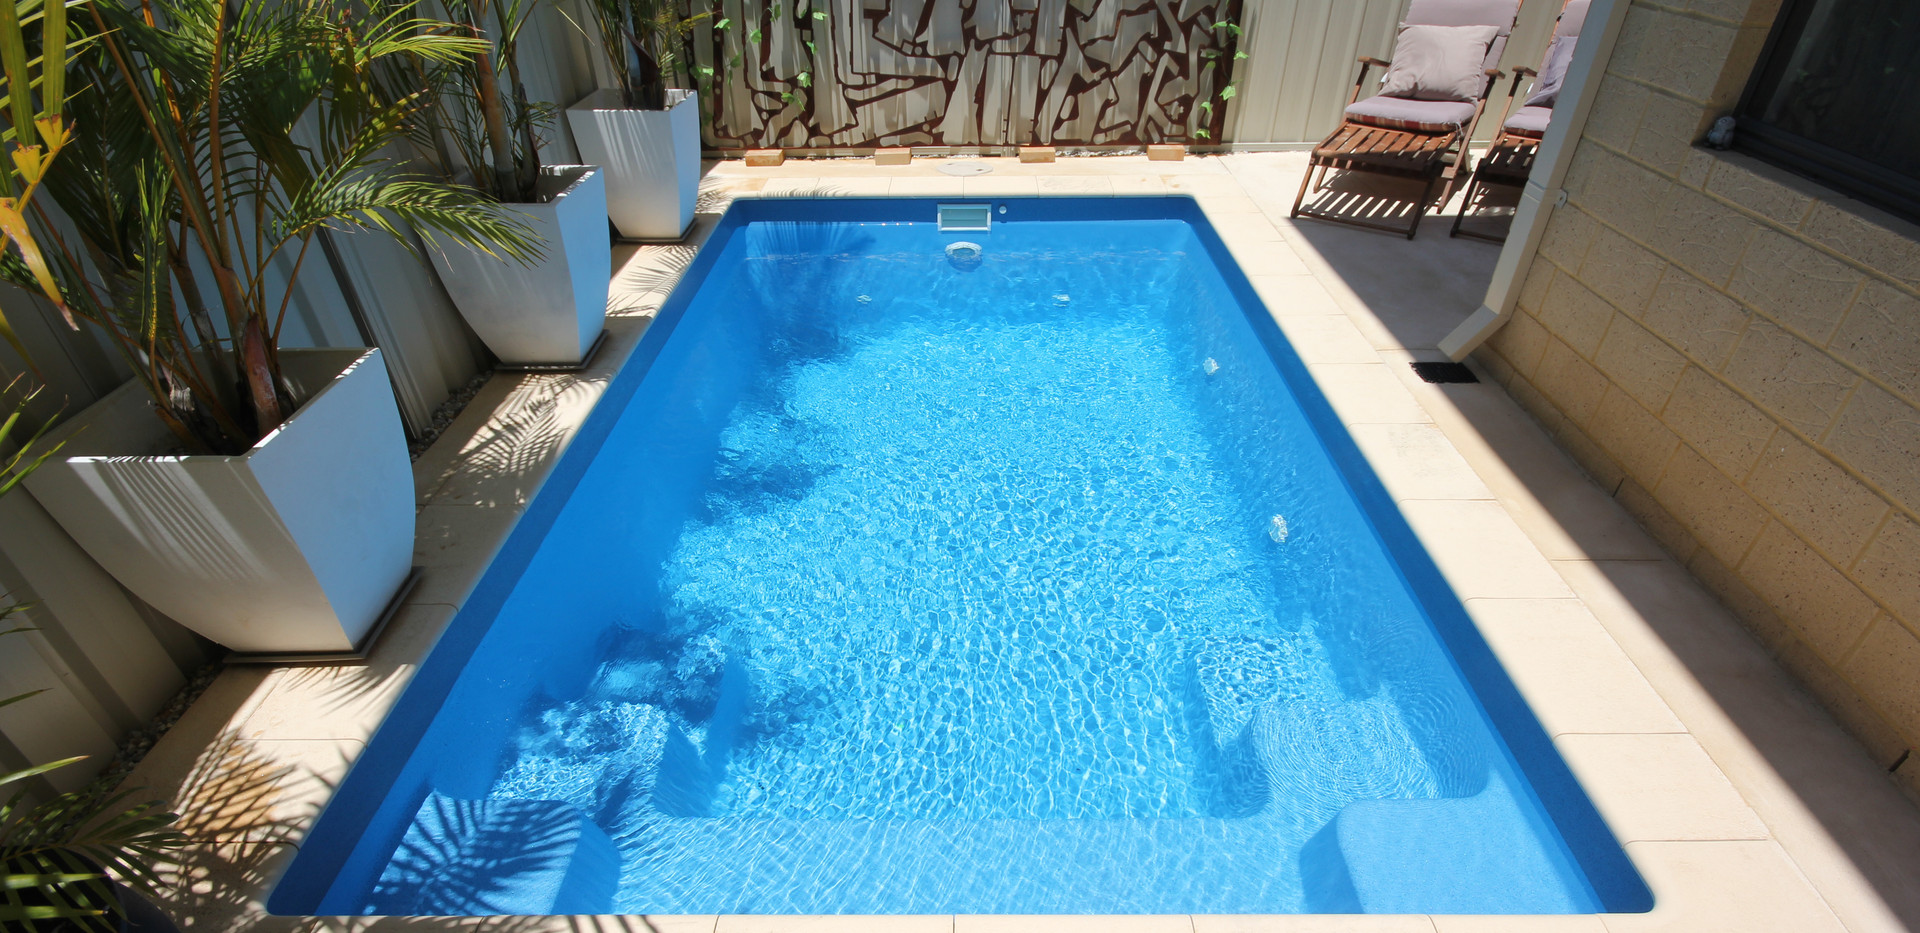 small serenity pool by greenwest 4.JPG